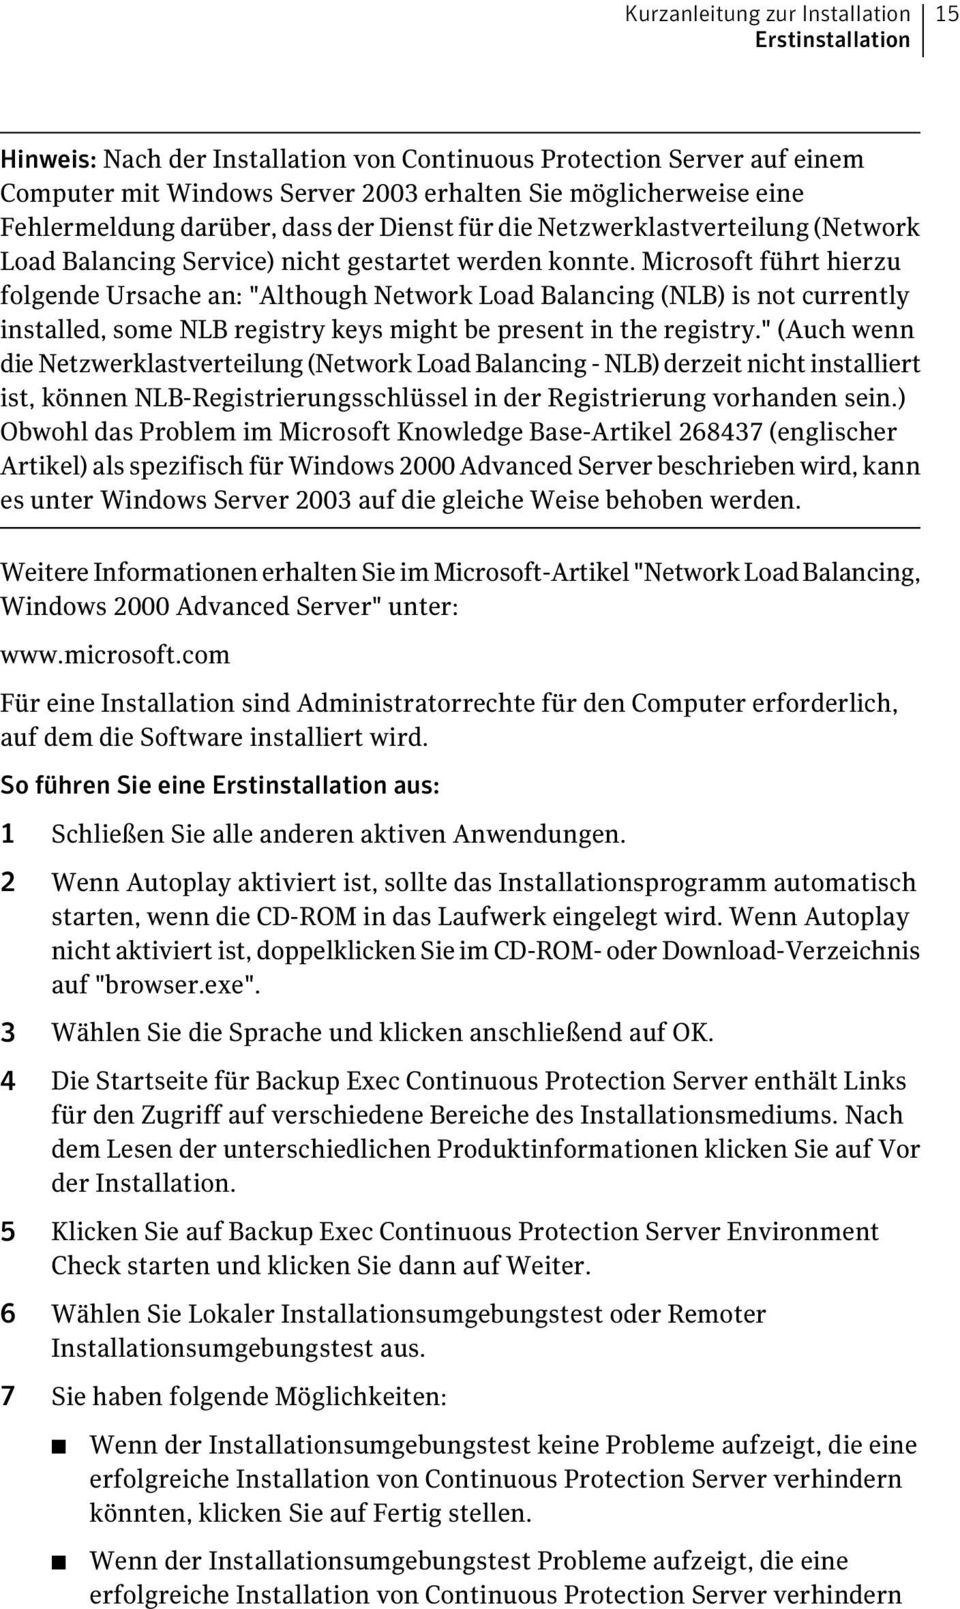 "Microsoft führt hierzu folgende Ursache an: ""Although Network Load Balancing (NLB) is not currently installed, some NLB registry keys might be present in the registry."